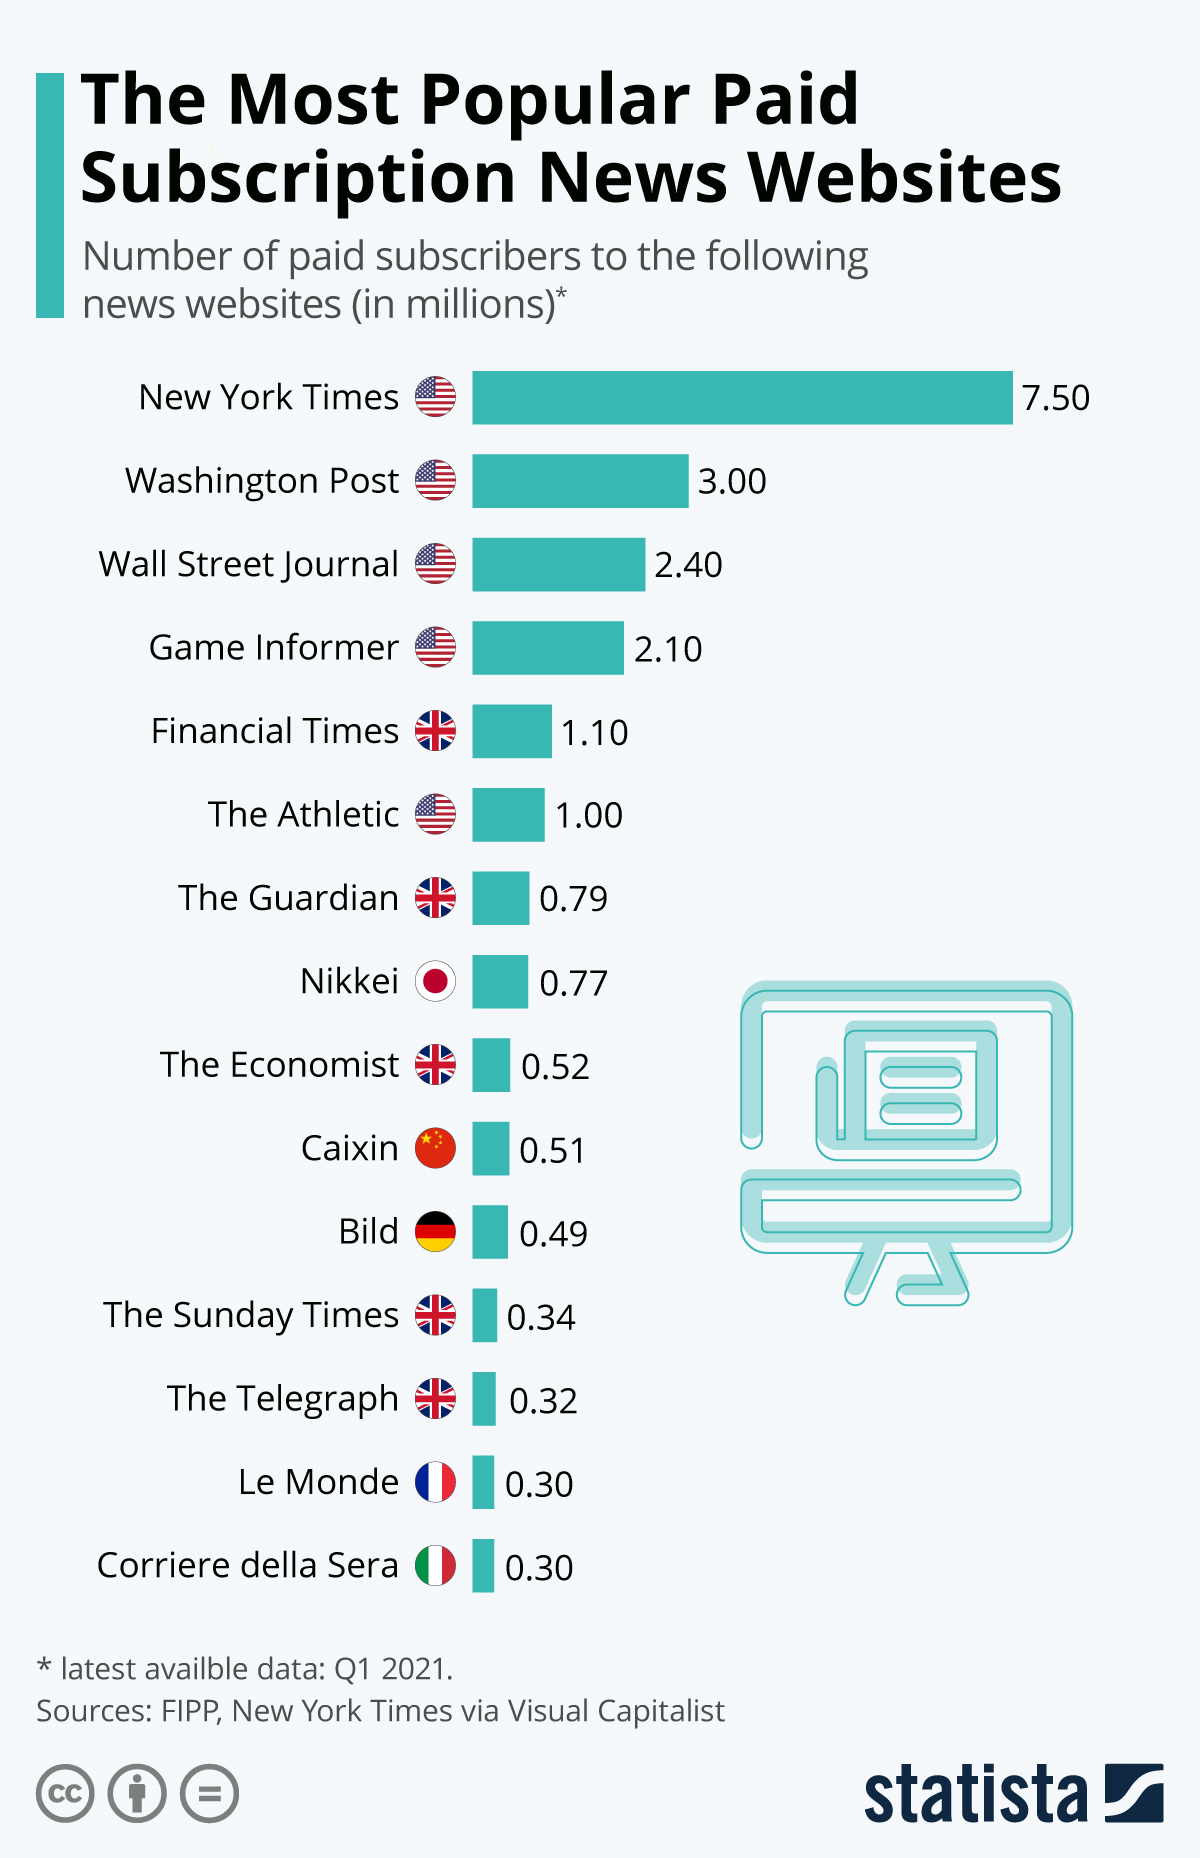 Which news website has the most paid subscribers?